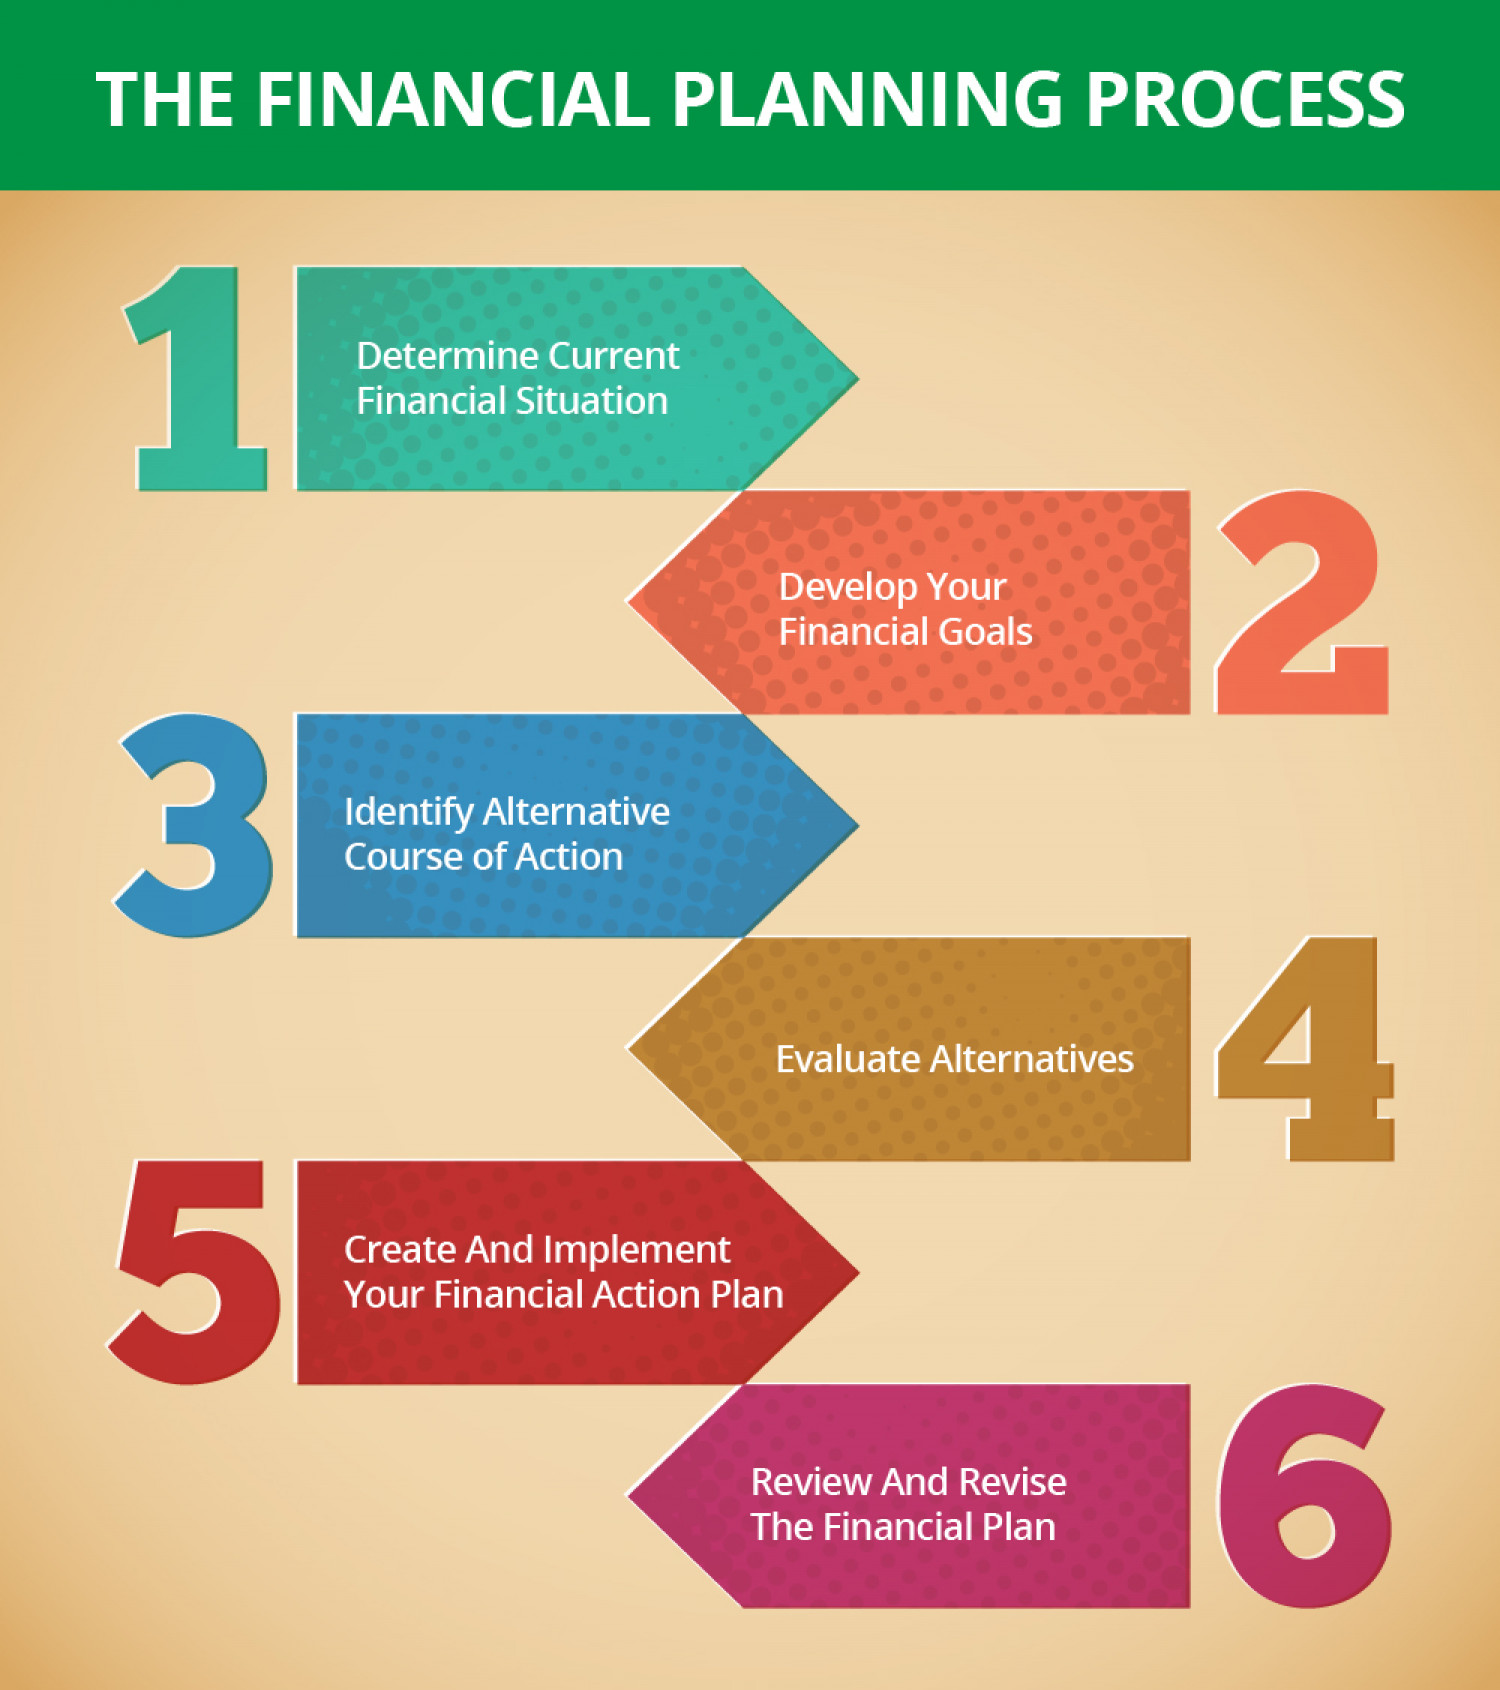 Steps In The Financial Planning Process  Visual. Make Your Own Rustic Wedding Invitations Free. Flower Ideas For My Wedding. You And Your Wedding Mother Of The Bride. Wedding Vendors In Atlanta. Wedding Shower Shoe Game. Wedding Photos Ulster American Folk Park. Wedding Registry If You Have Everything. Wedding Guest Book Birthday Calendar